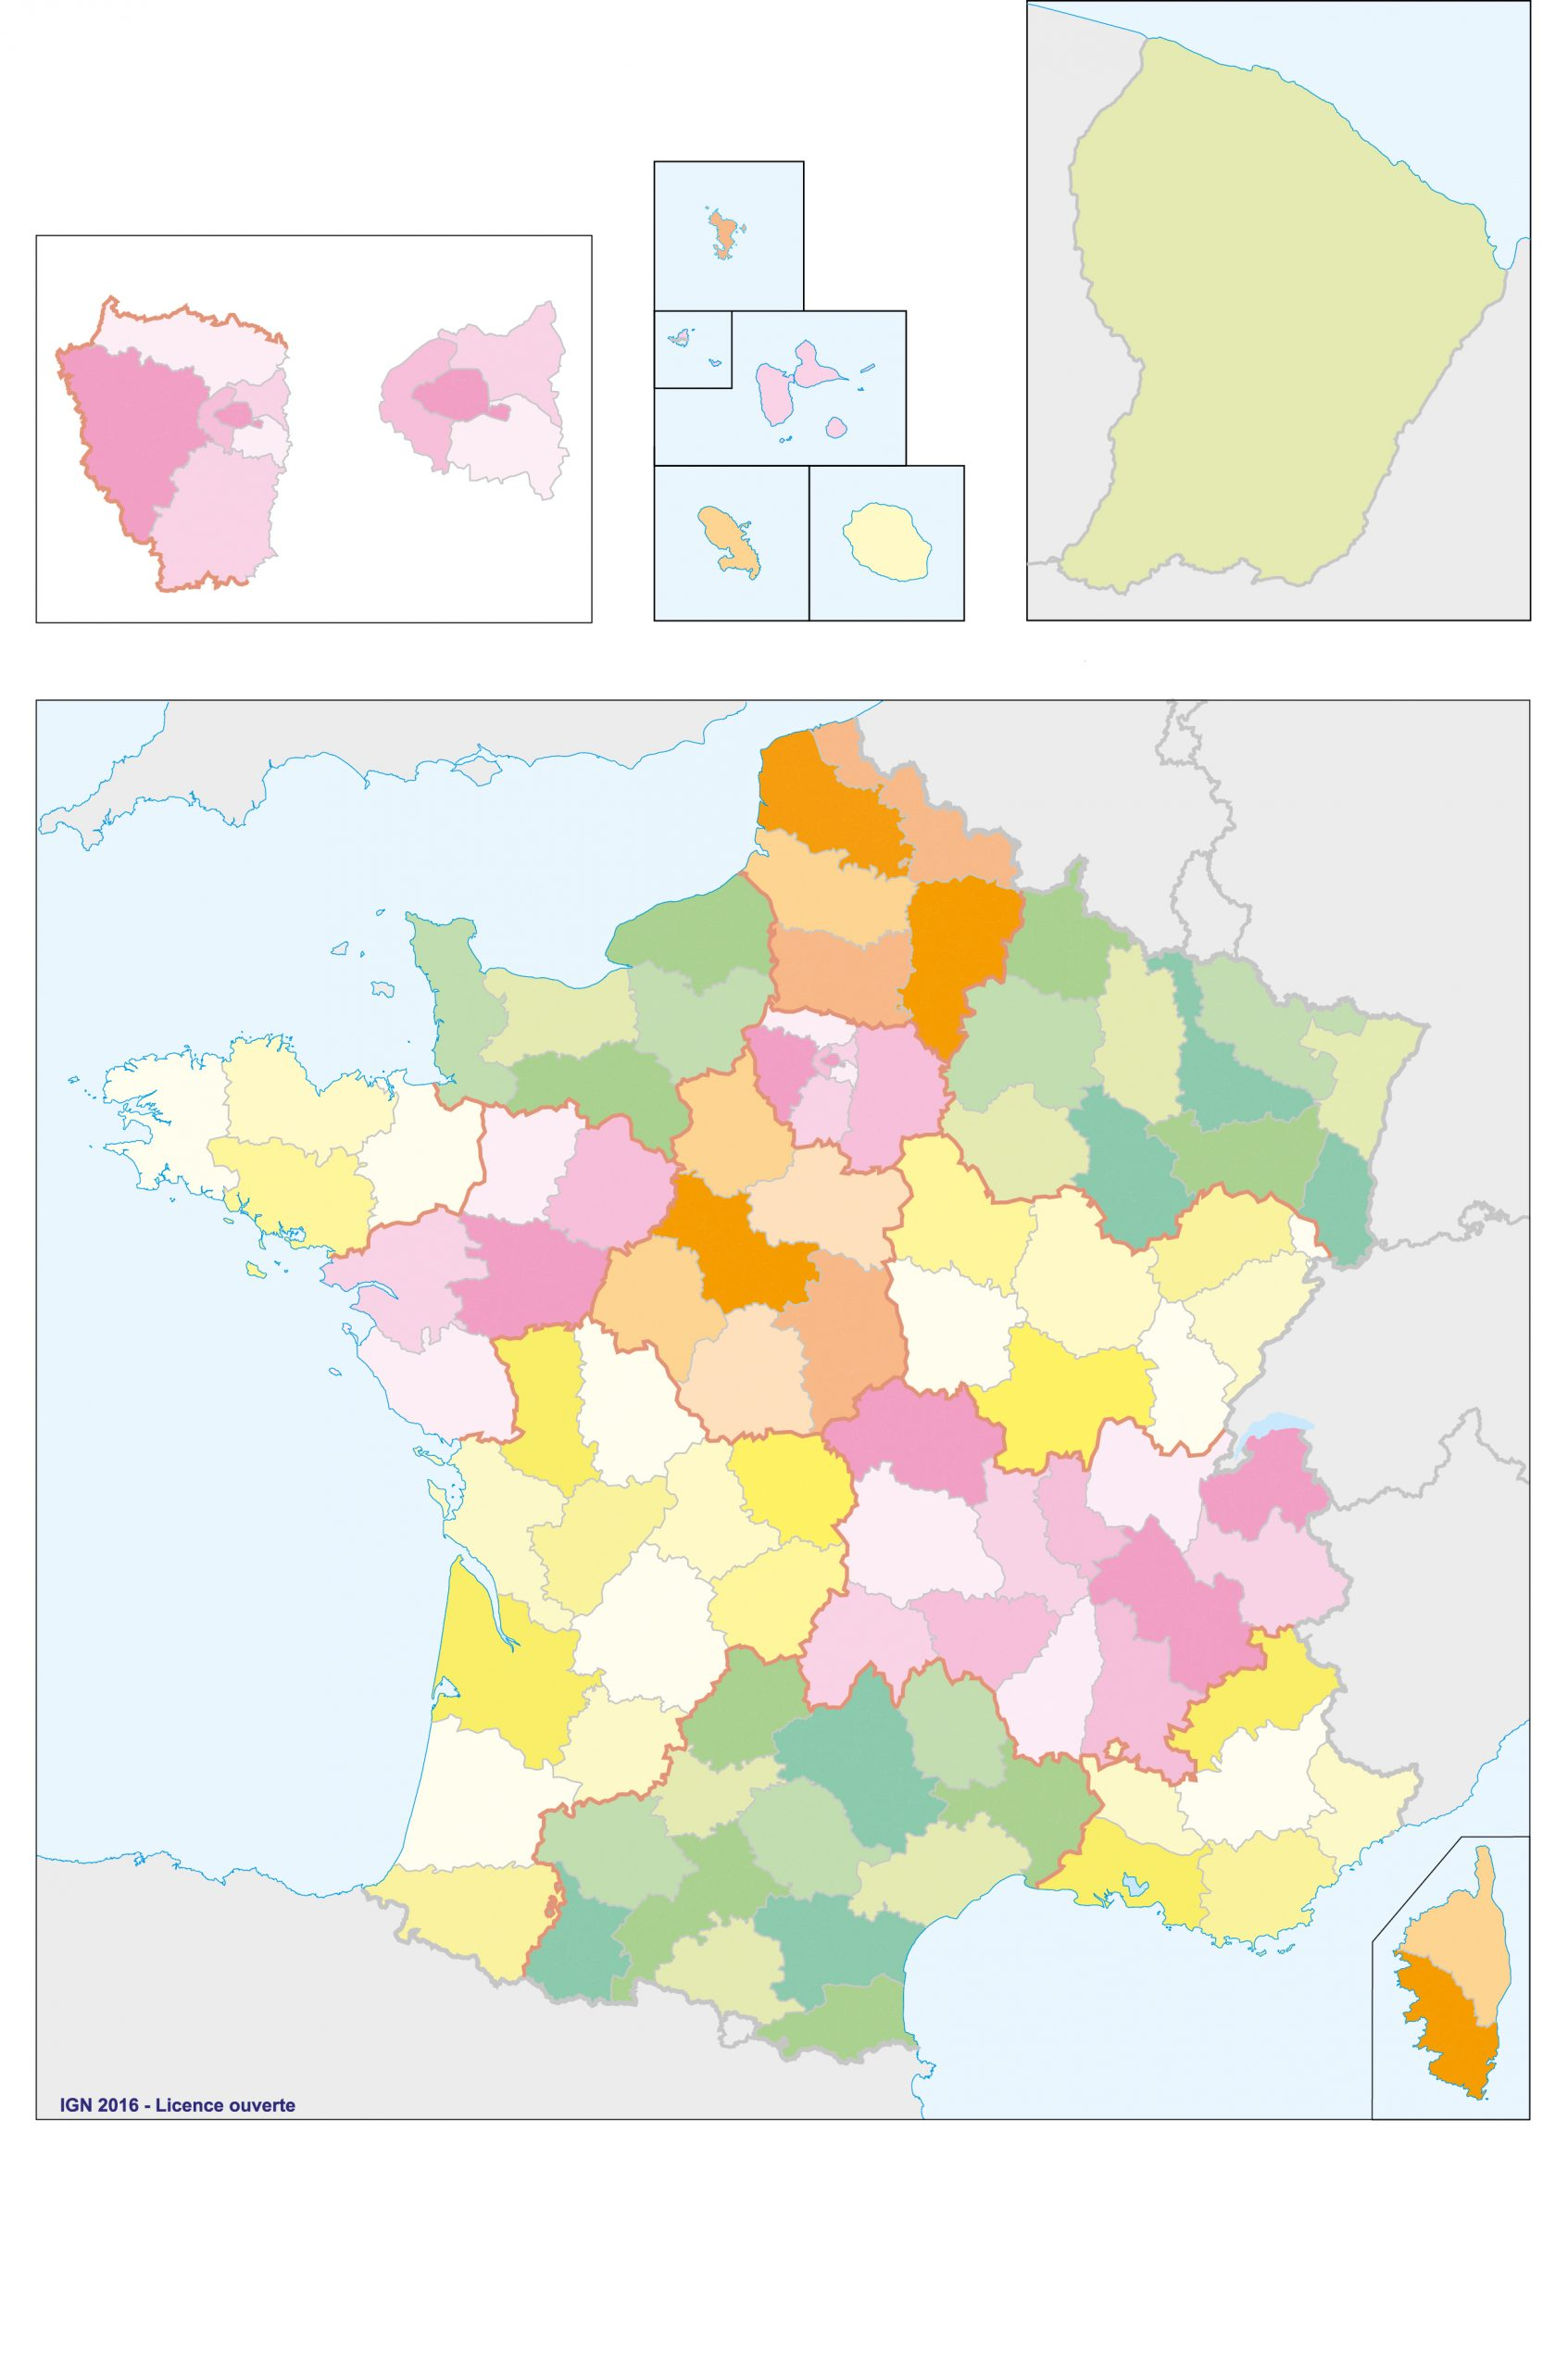 Fonds De Cartes | Éducation à Imprimer Une Carte De France